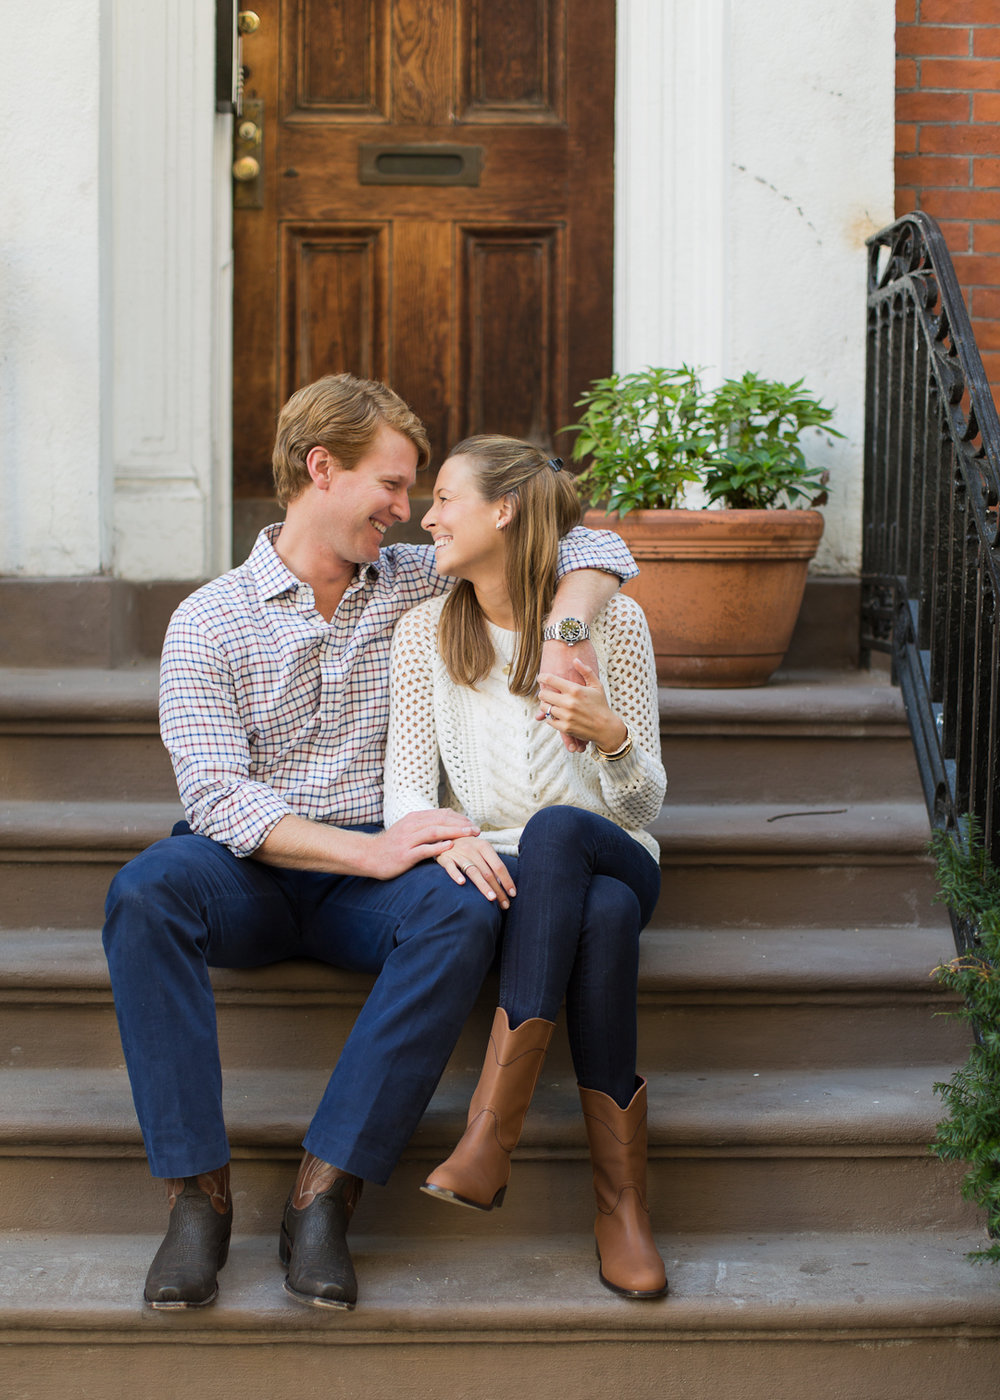 Melissa Kruse Photography - Megan & Tyler West Village Engagement Photos-50.jpg